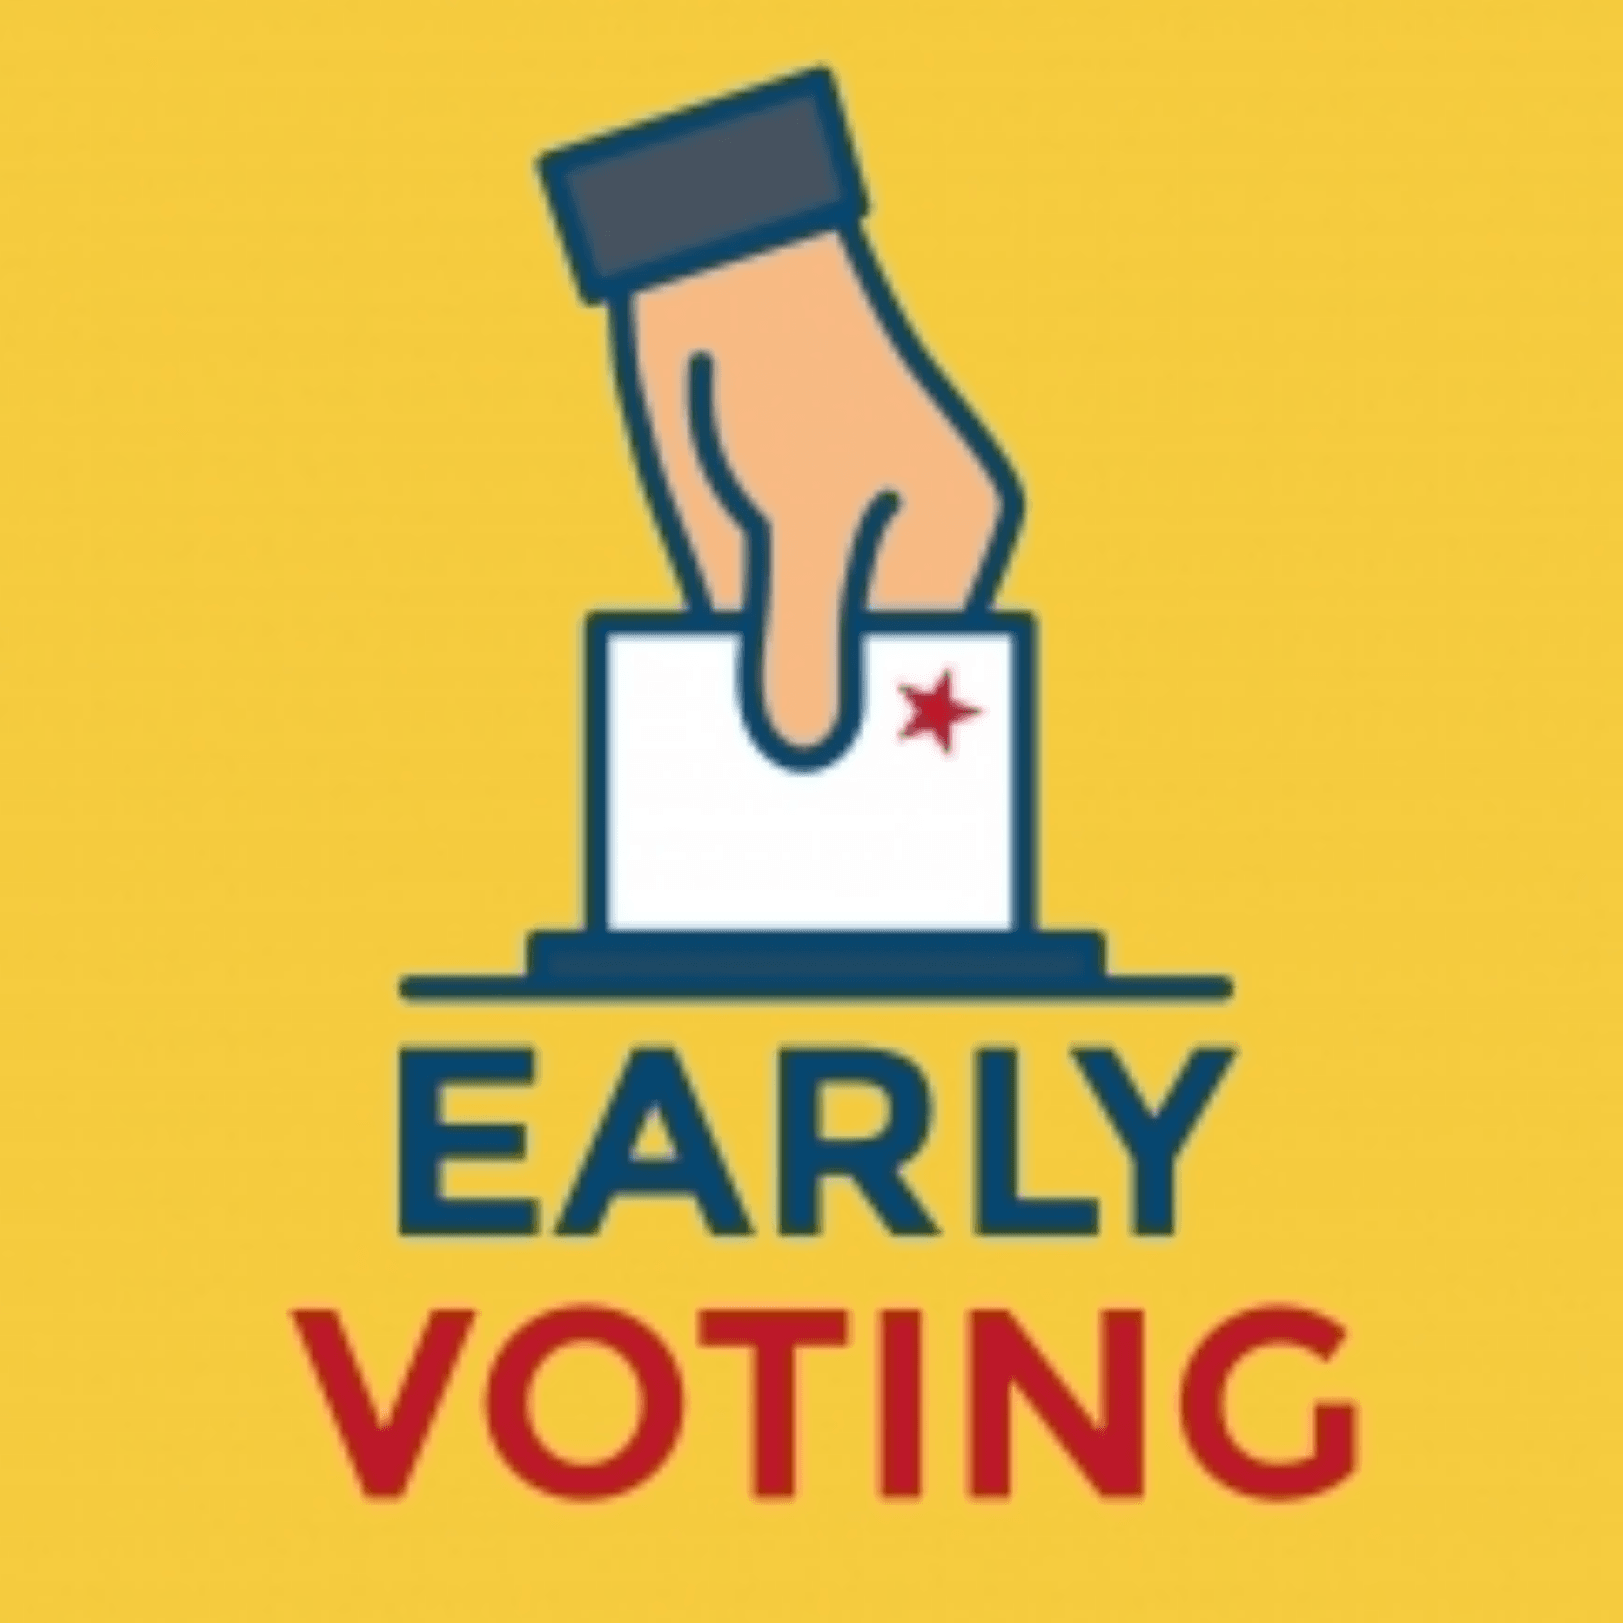 early-voting_47079610